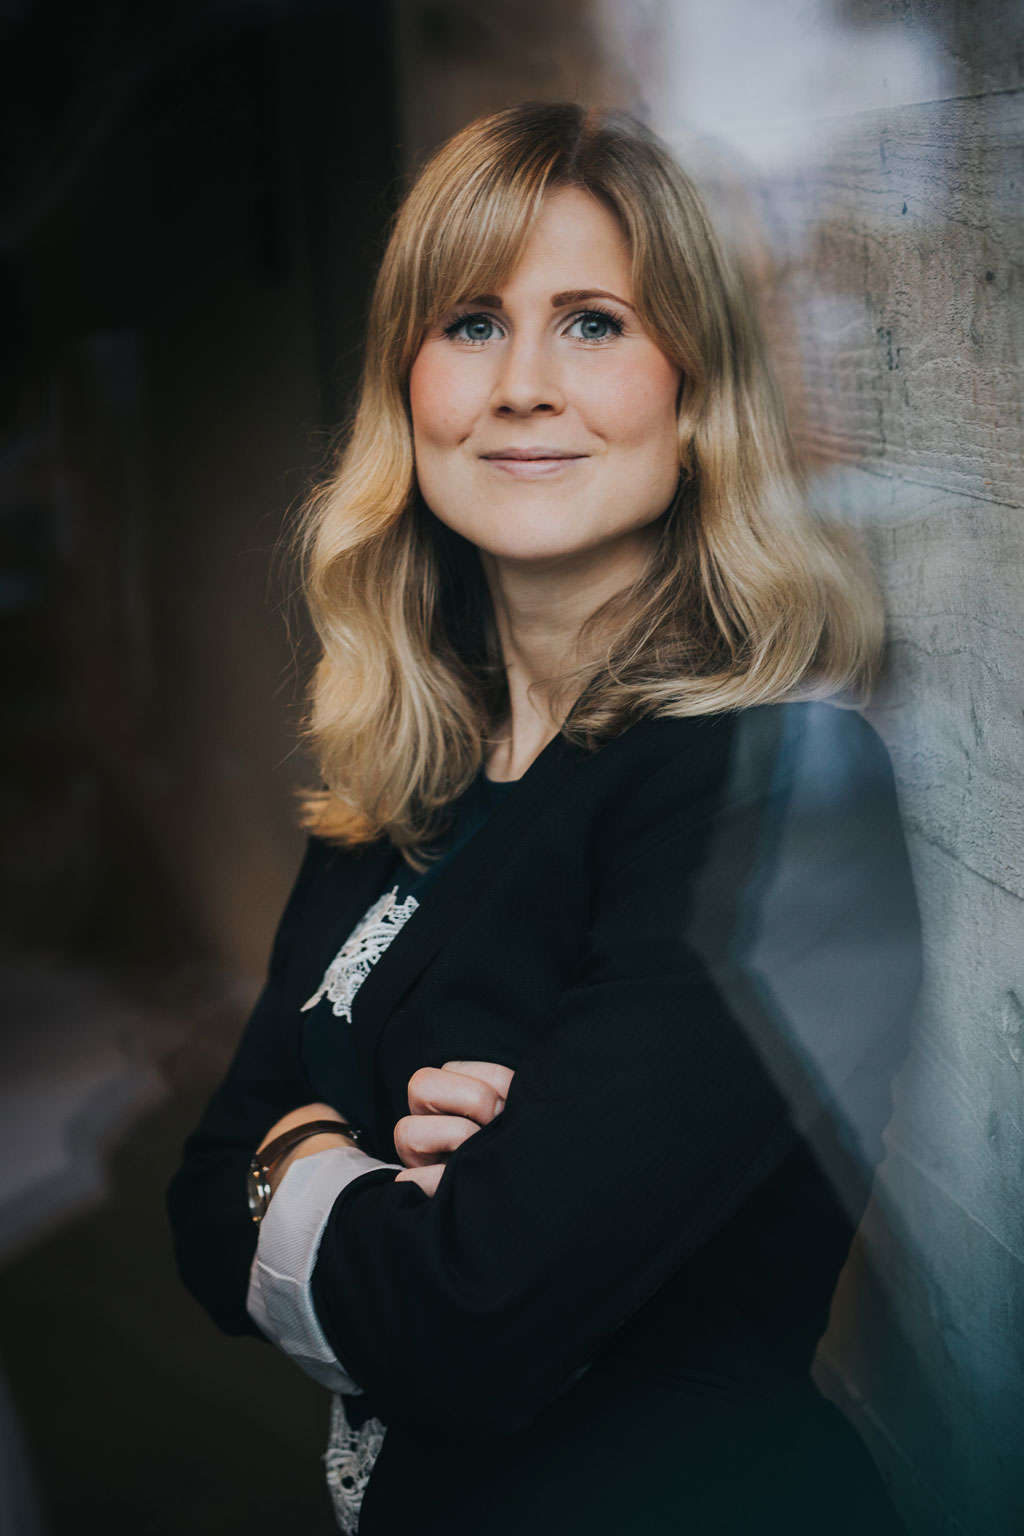 Sofia Fölster, Female Economist of the Year 2019. Picture taken at Artipelag by photographer Juliana Wiklund.